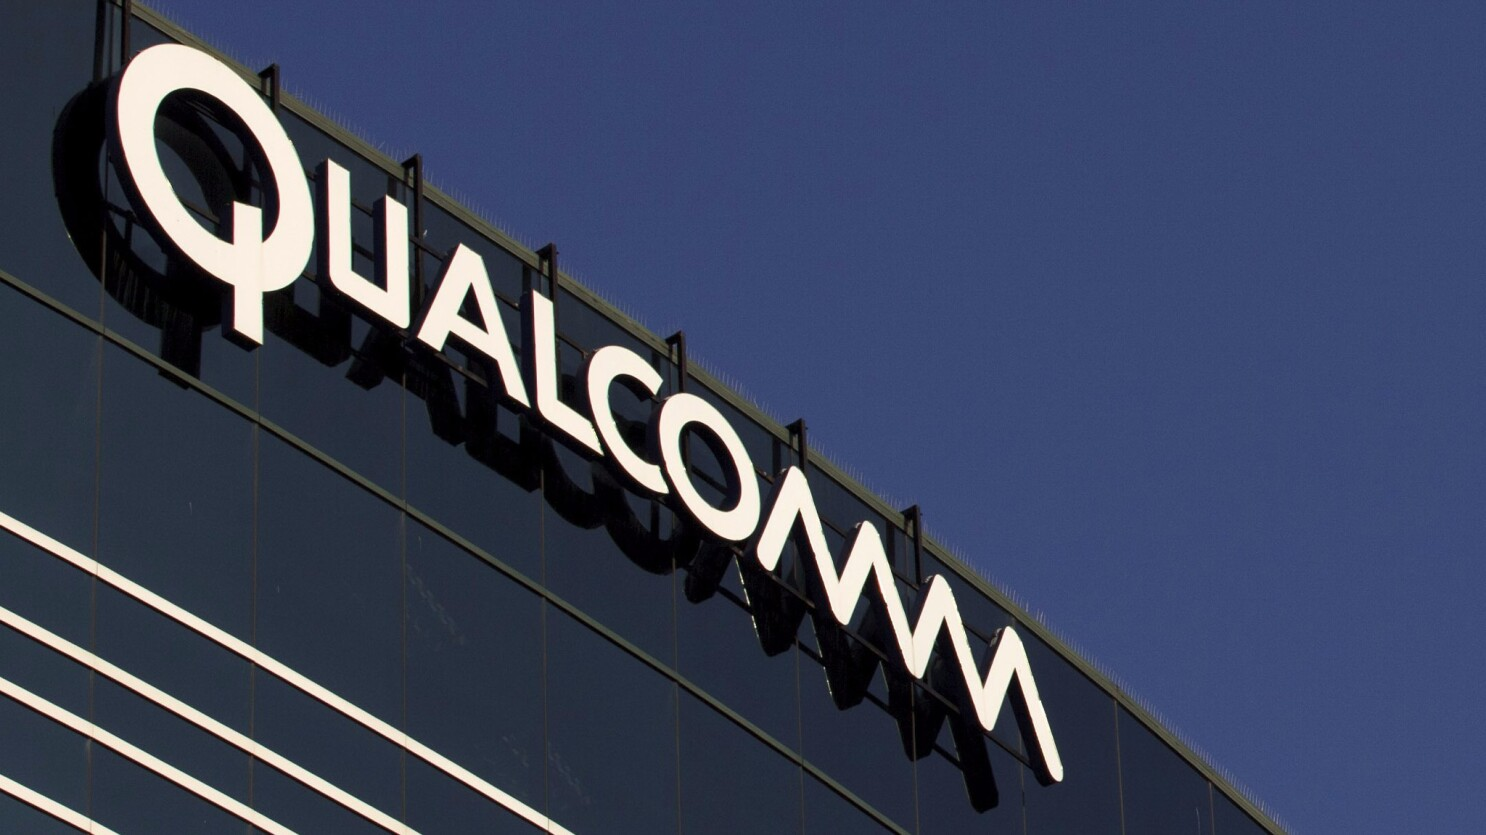 Qualcomm gets U.S. support to pause FTC antitrust ruling - Los Angeles Times